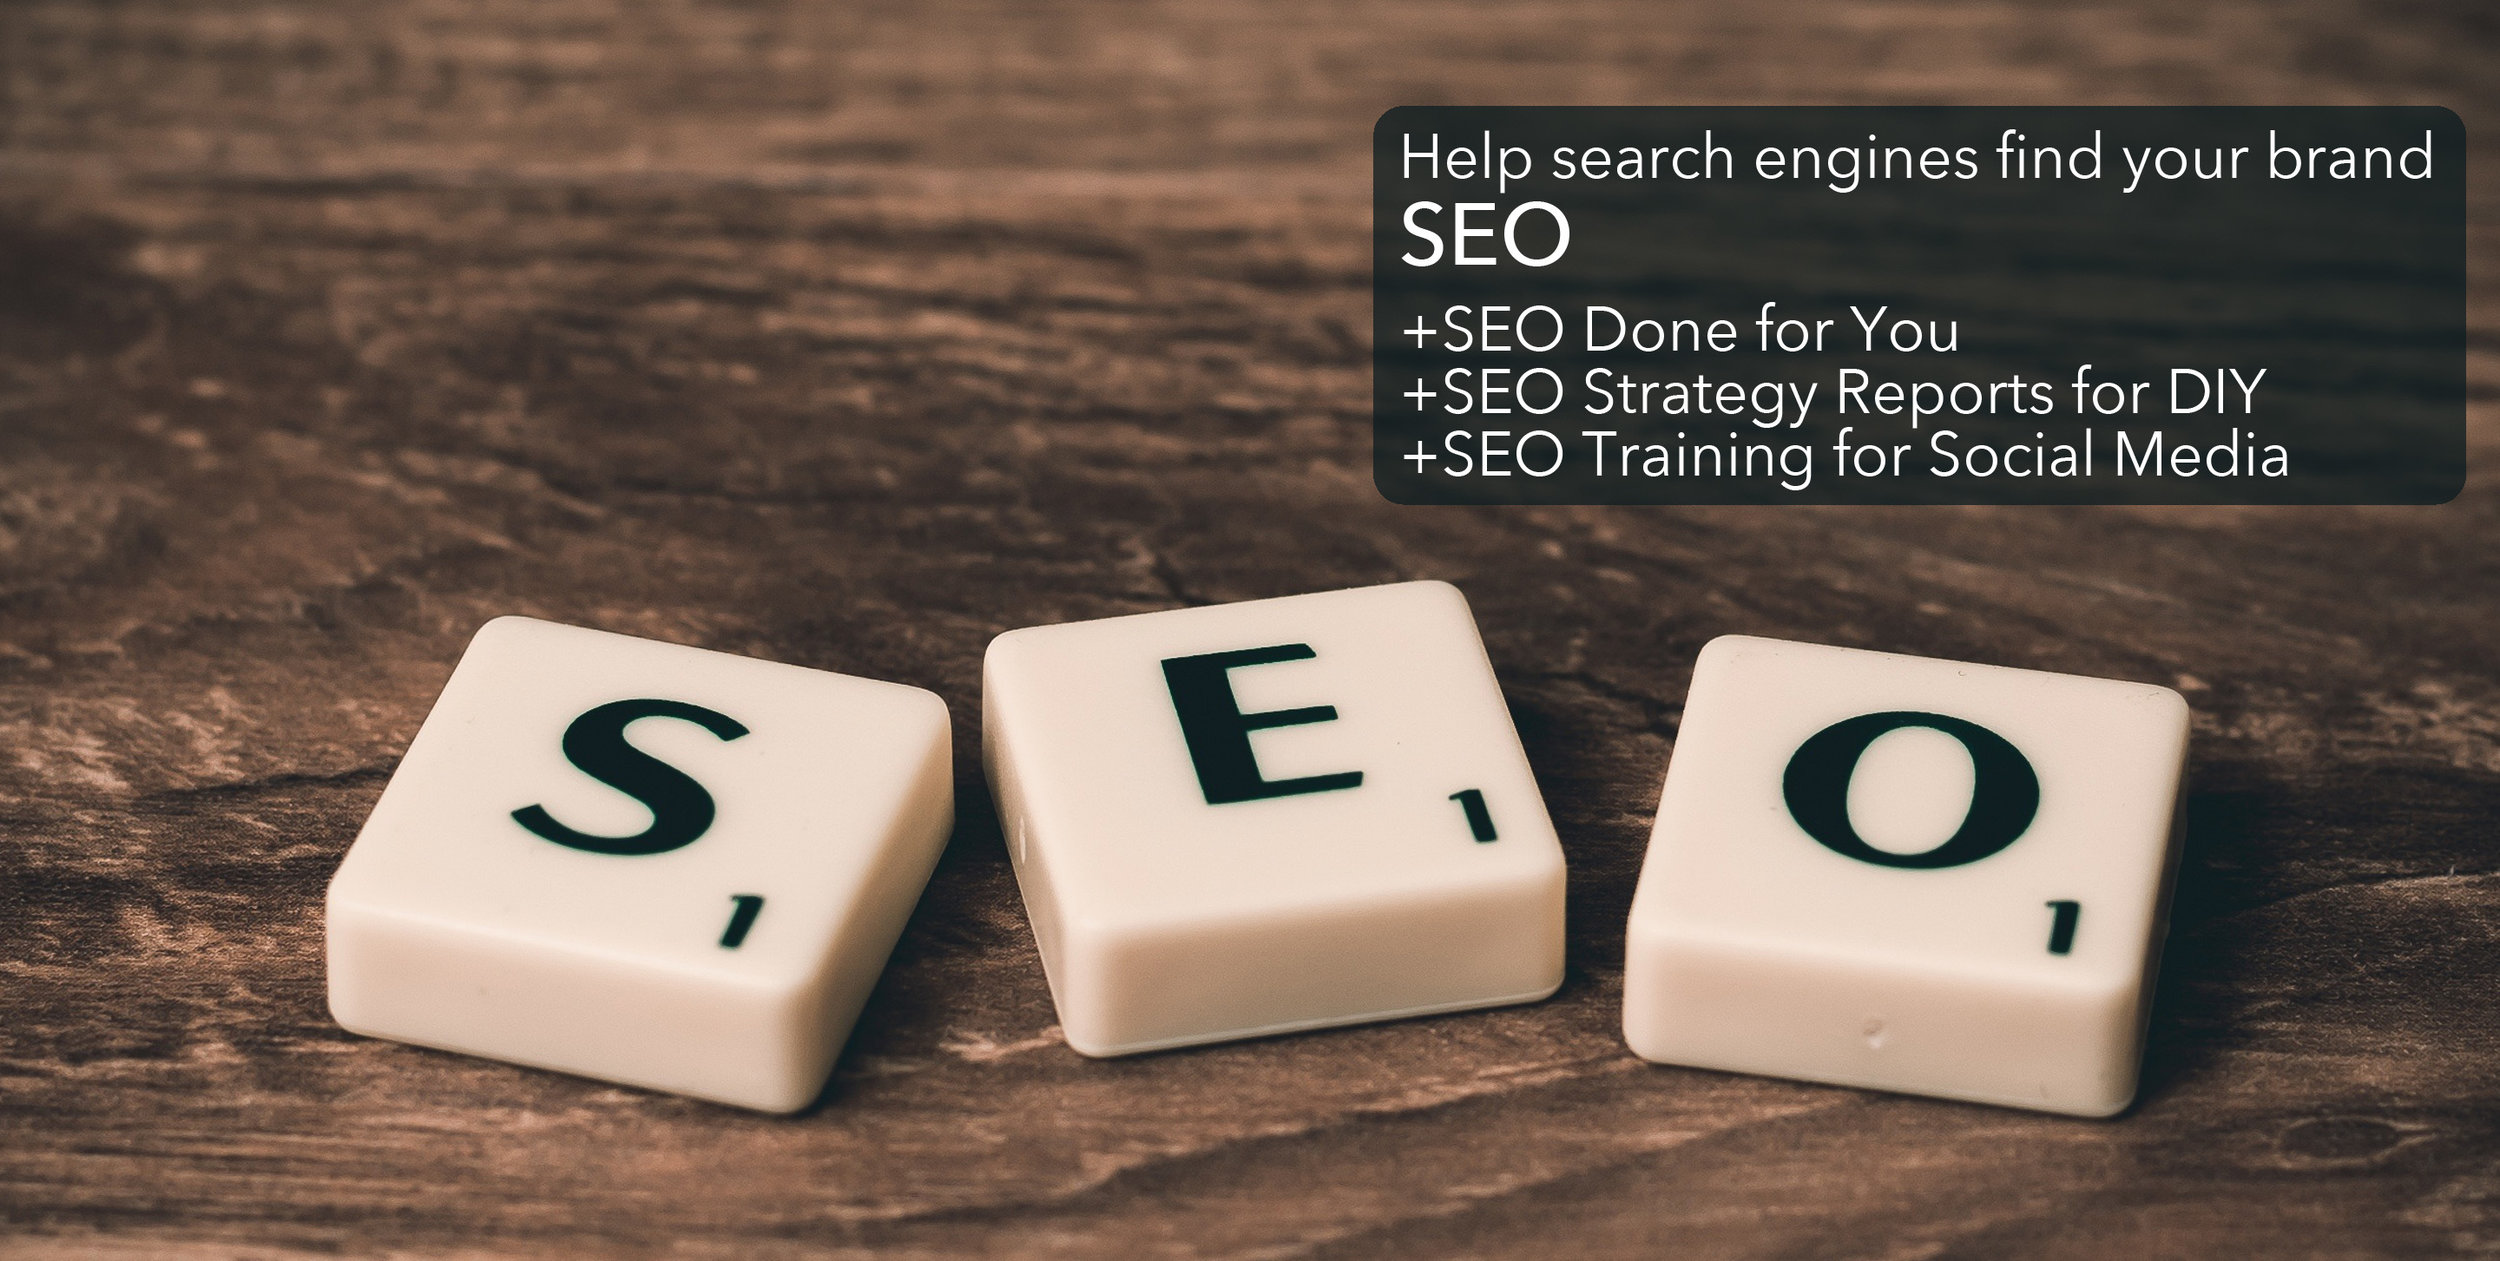 SEO_Search_Engine_Optimization_Hudson-Valley-Firm.jpg